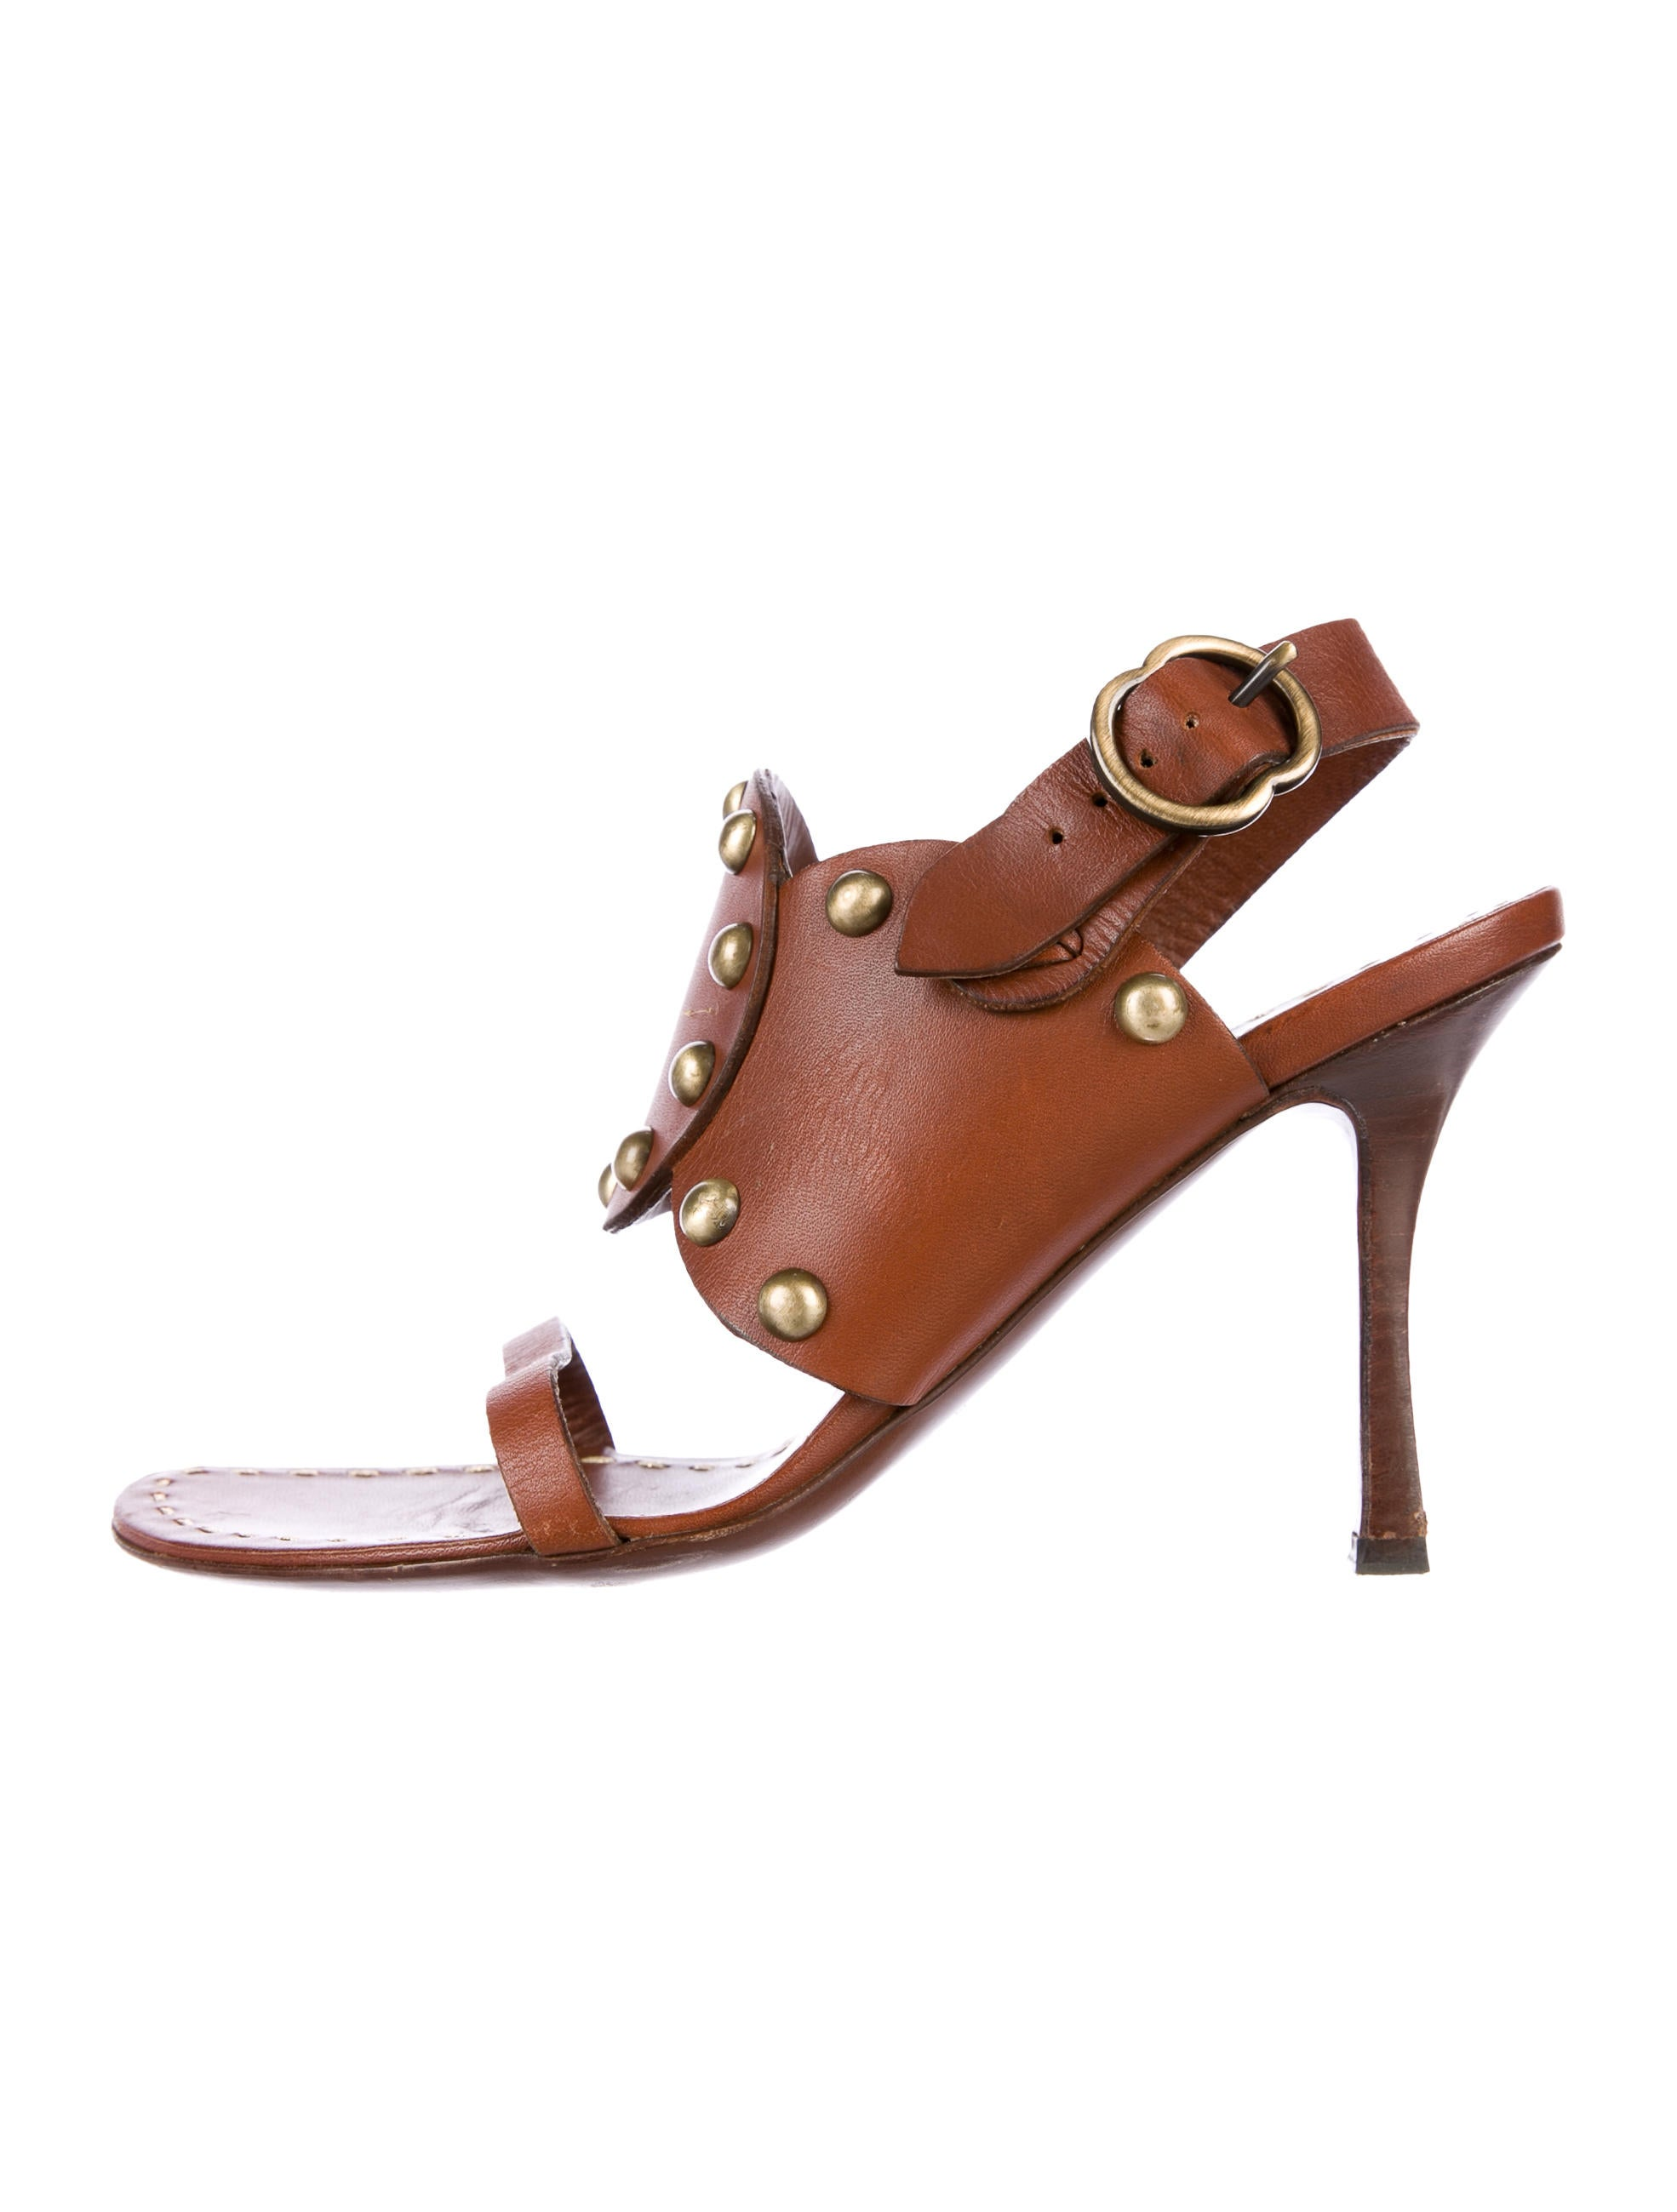 Céline Studded Leather Sandals free shipping real sale many kinds of buy cheap cost free shipping geniue stockist sgr37